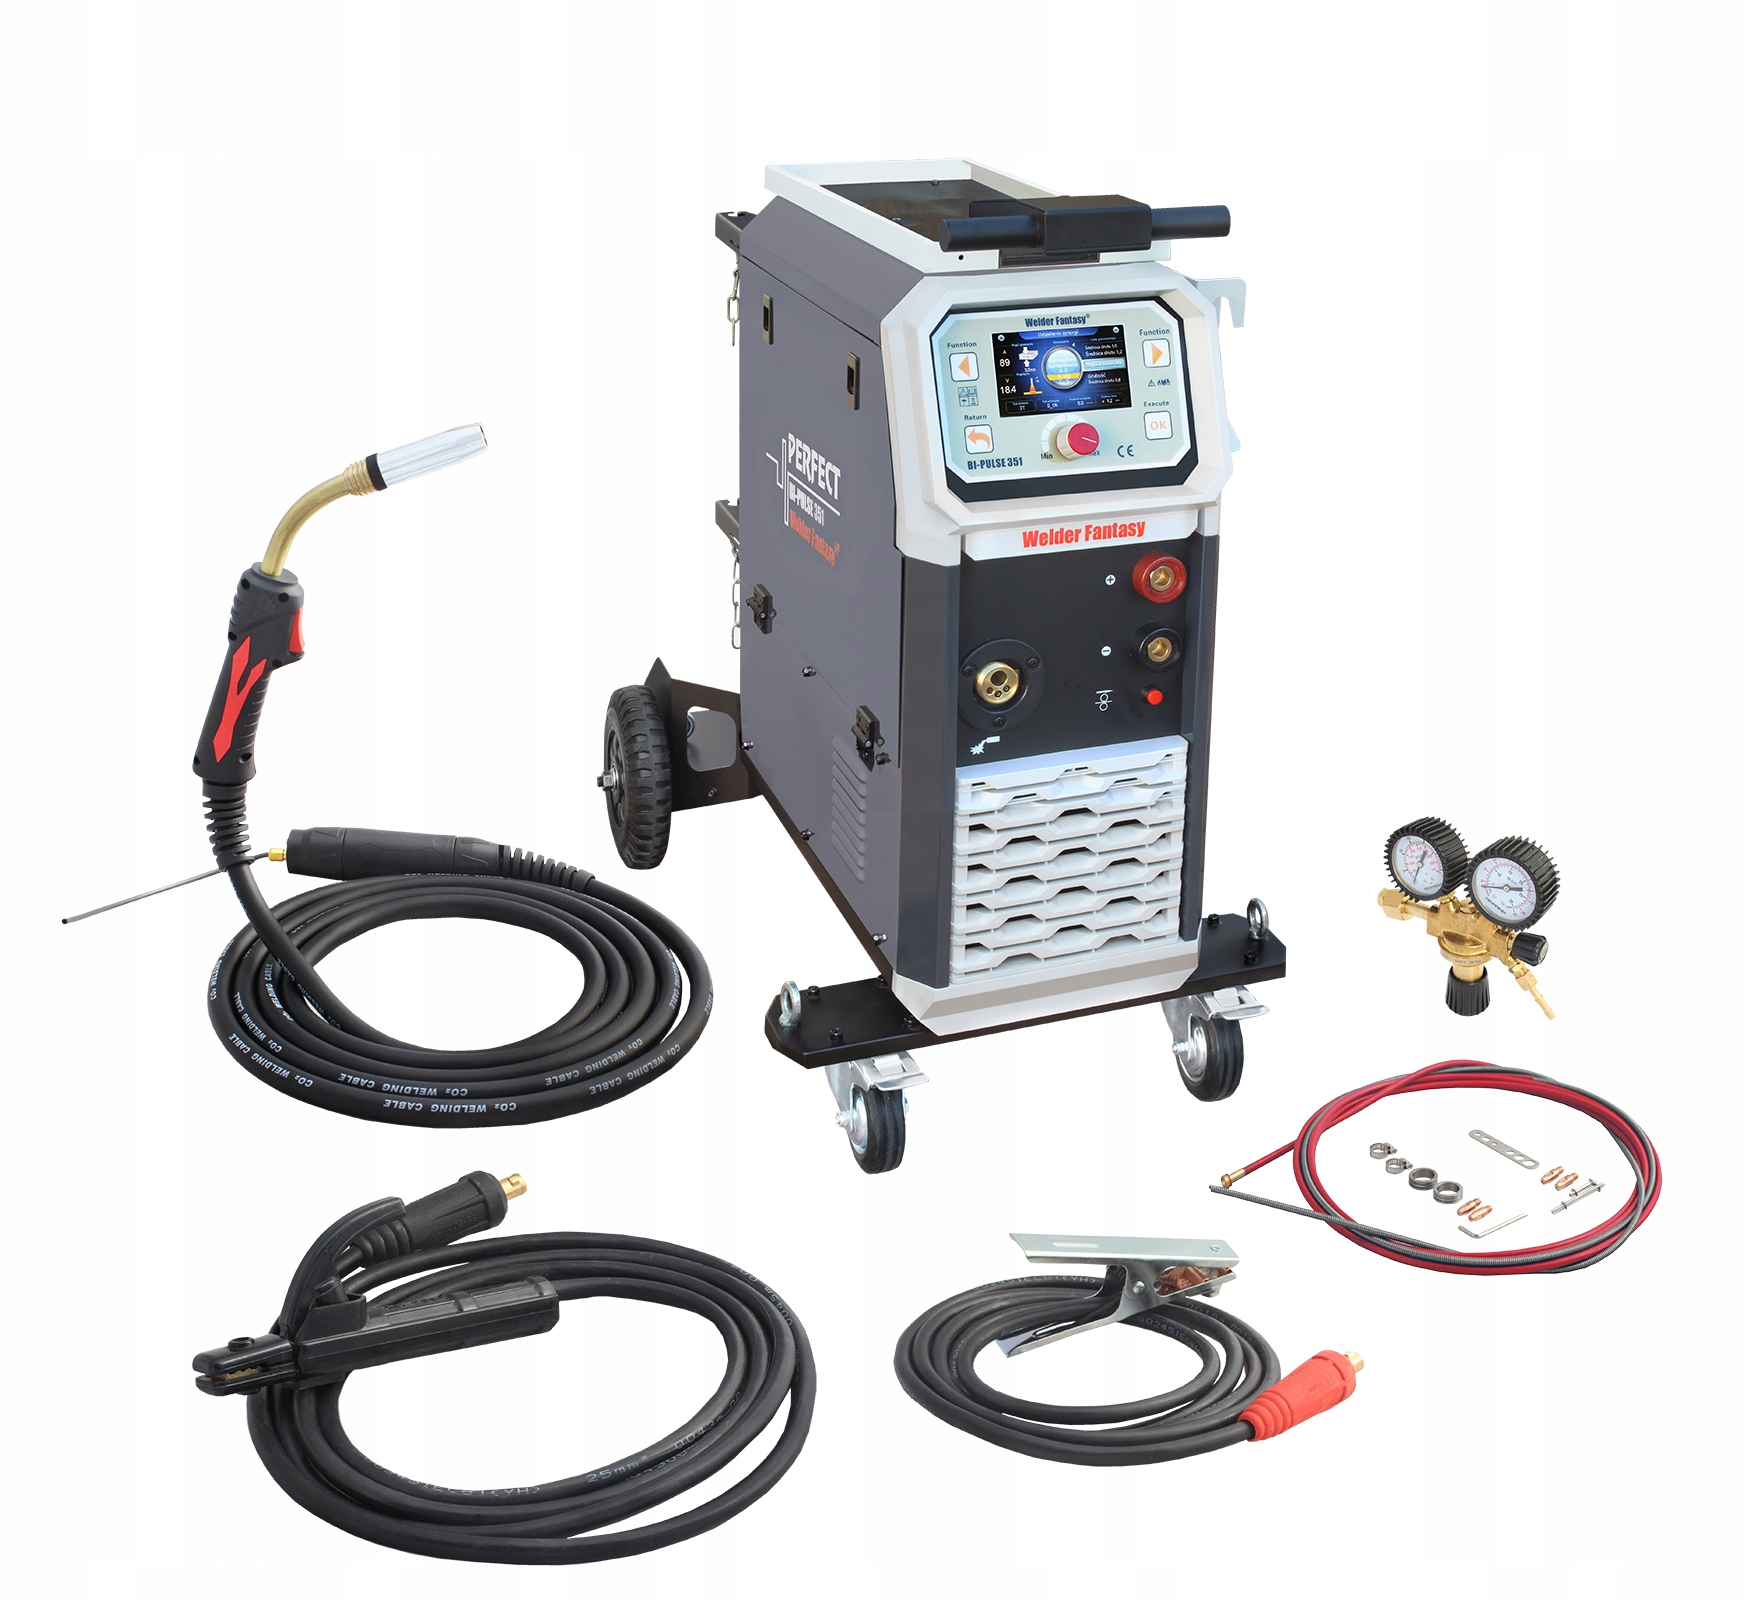 SPAWARKA MIGOMAT Welder Fantasy PERFECT 351 4X4